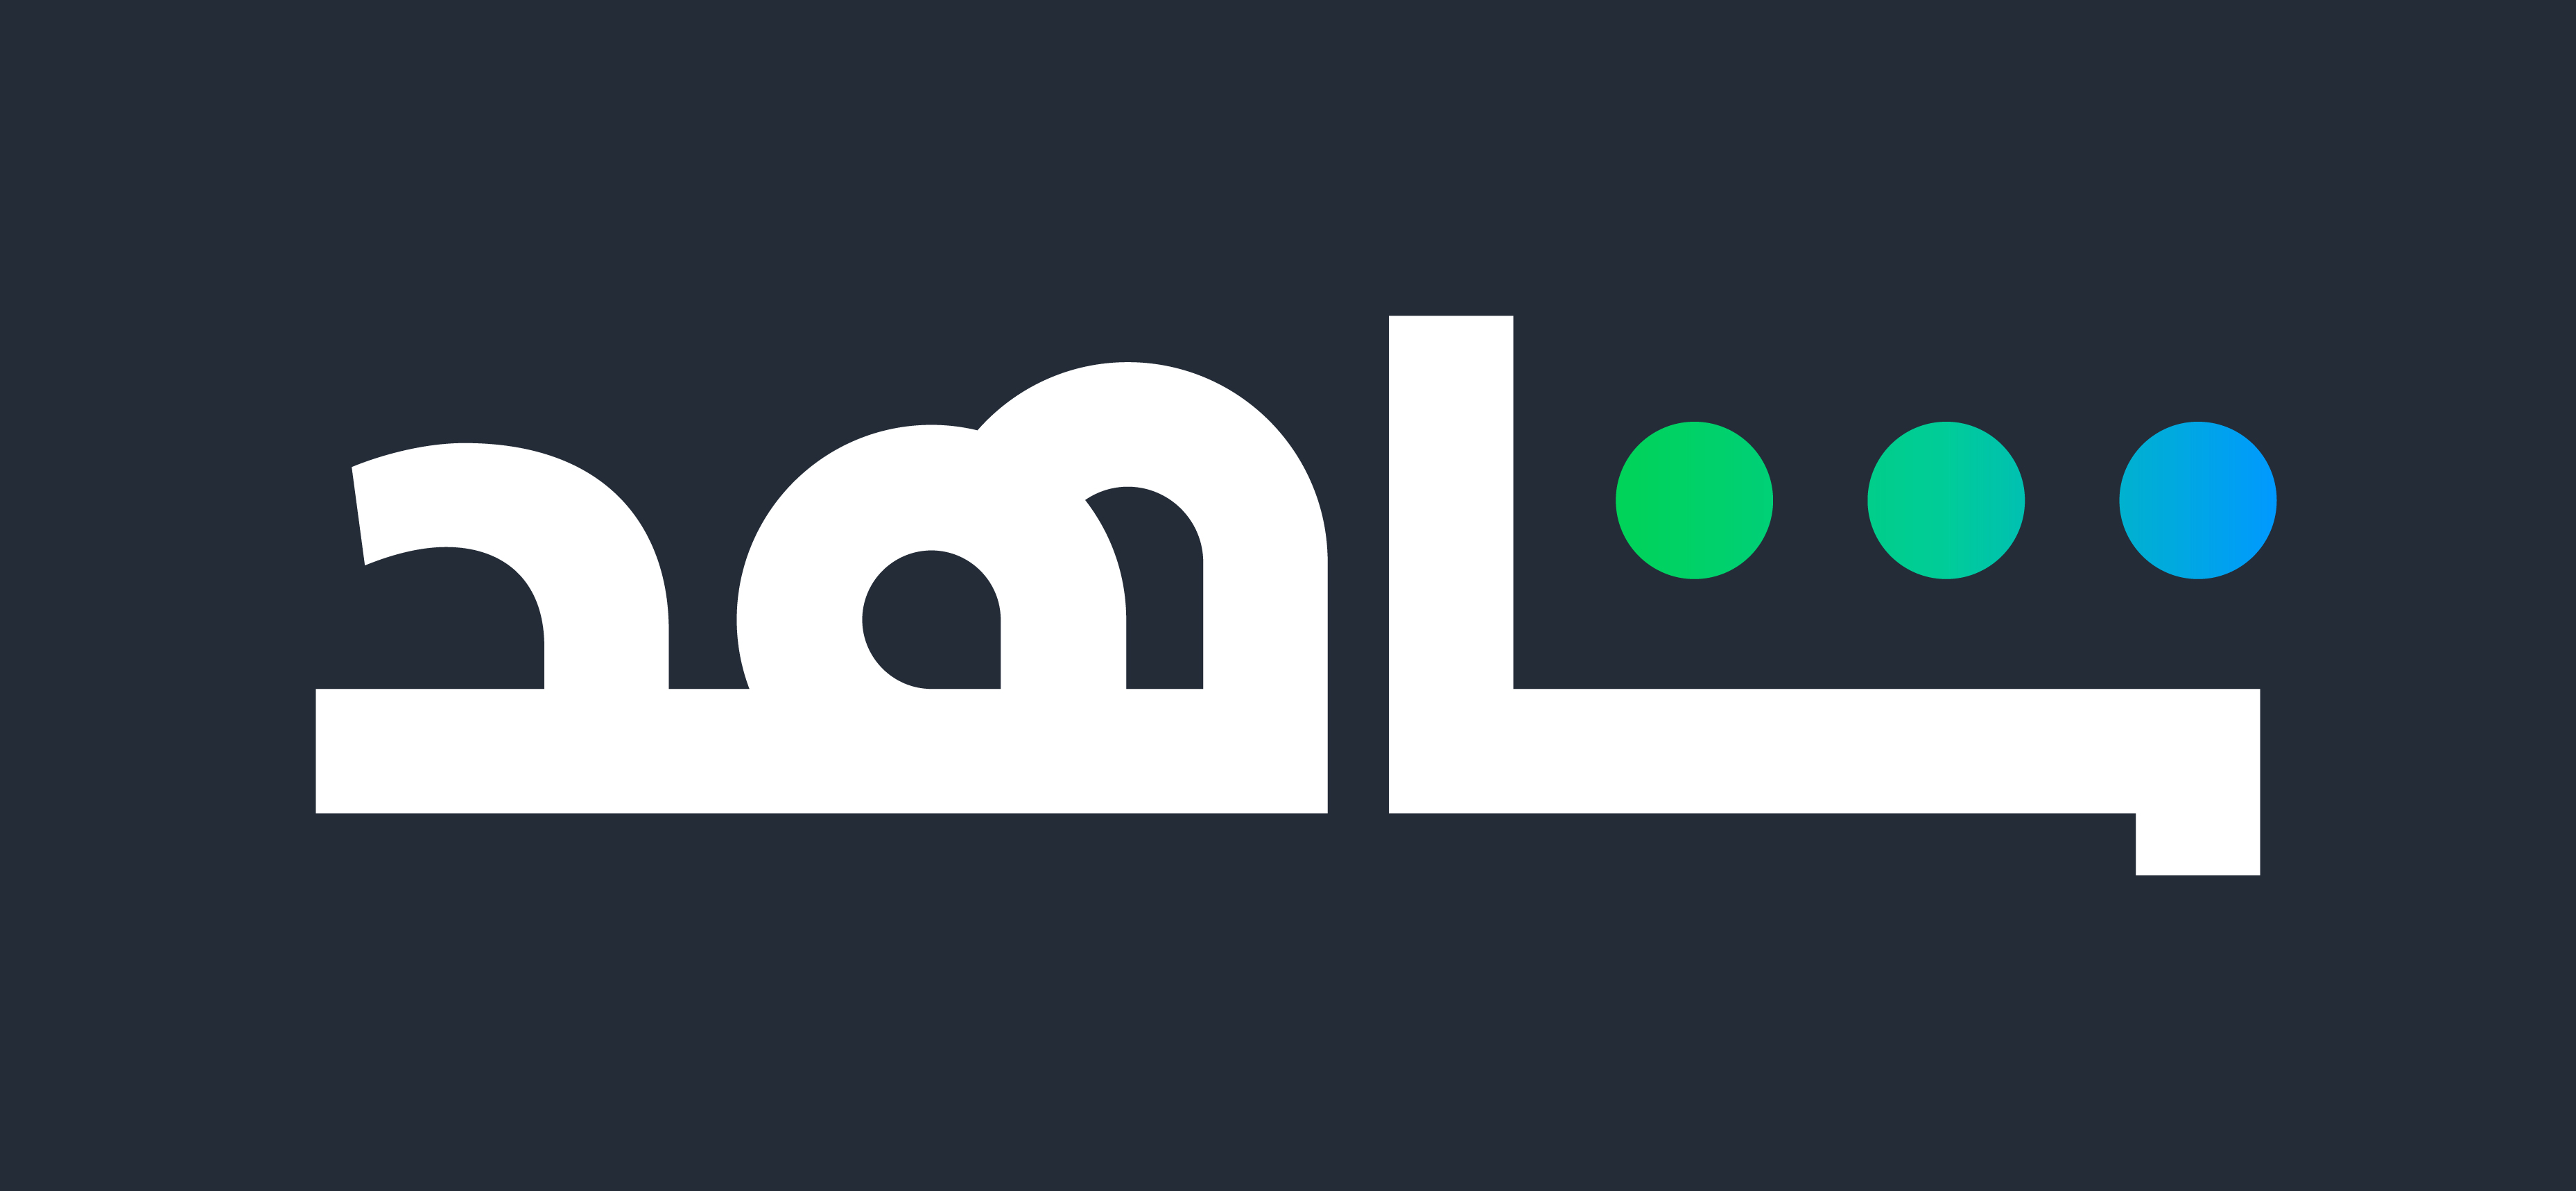 Shahid_Brandmark-Artwork_Arabic-Reversed-RGB.jpg